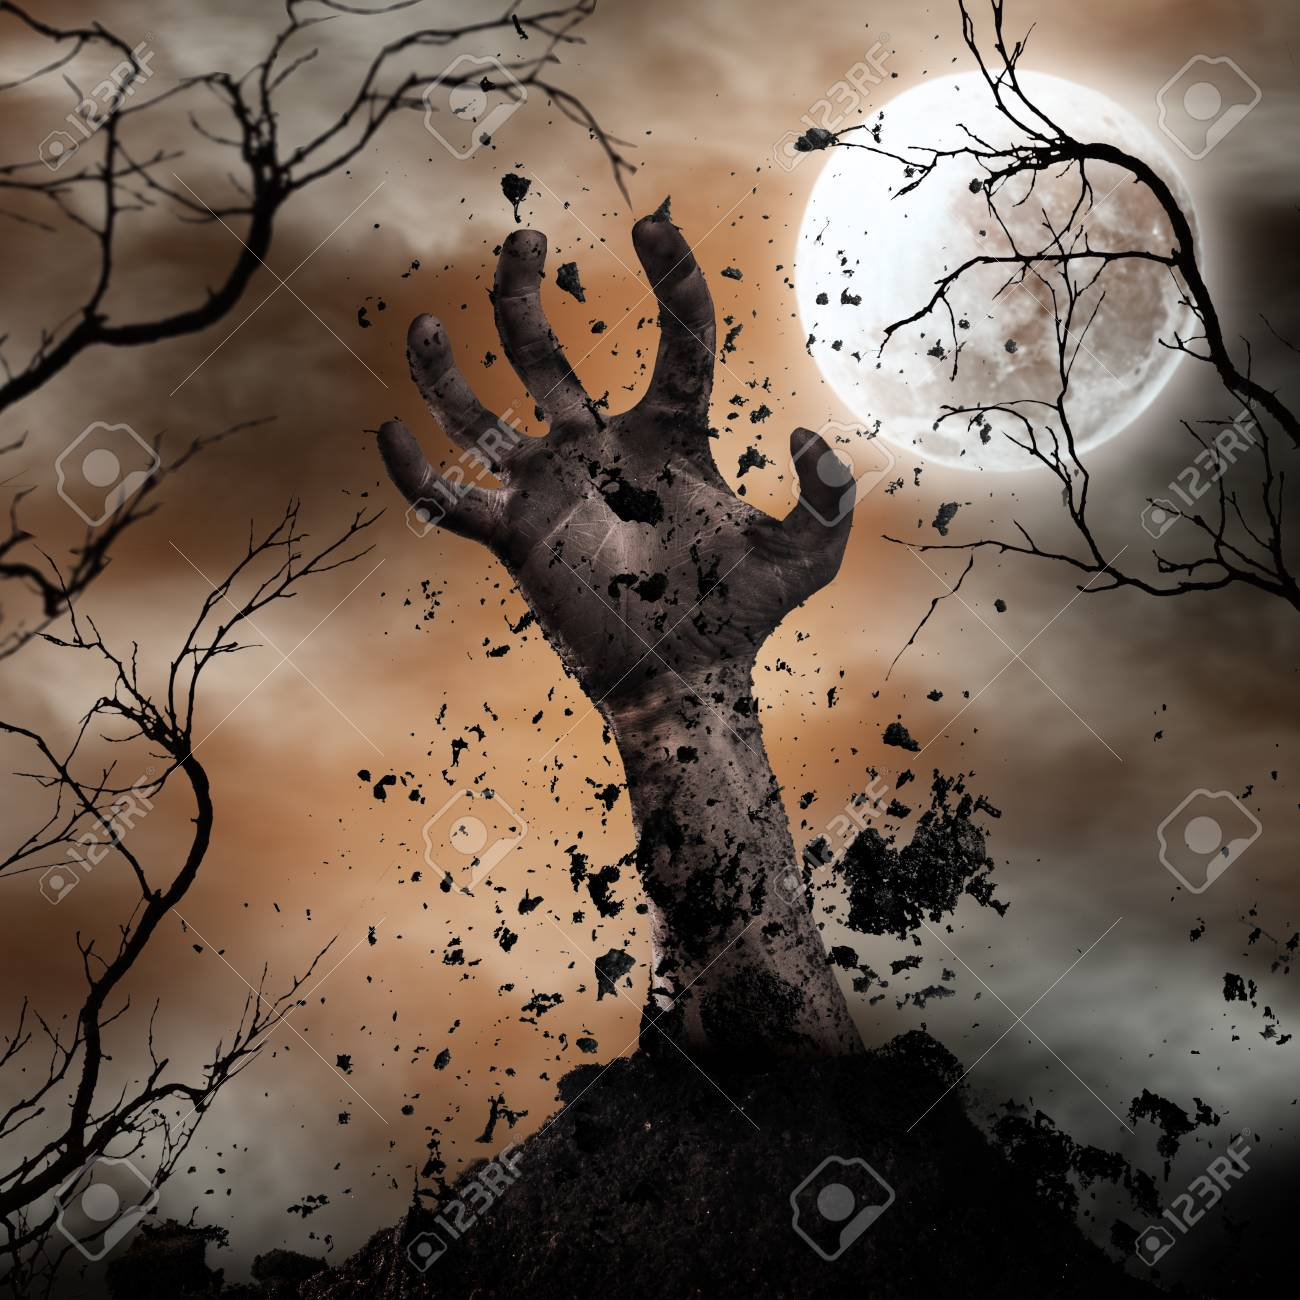 1300x1300 - Scary Halloween Background 55